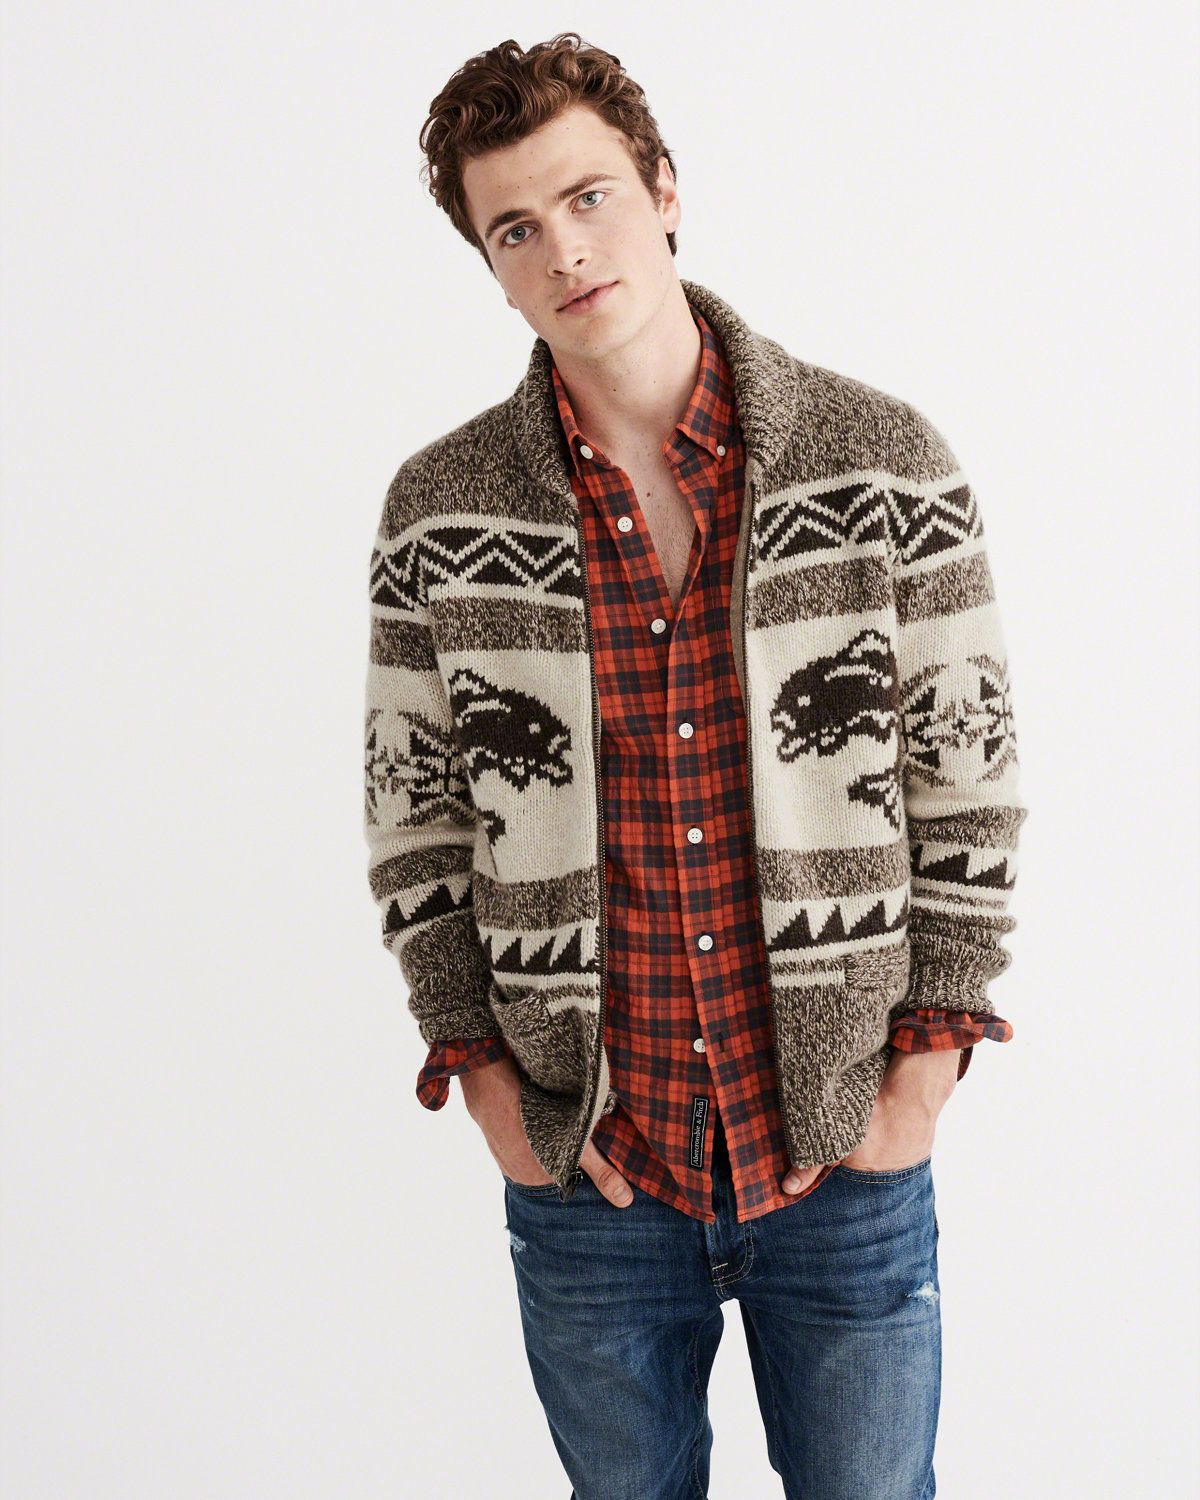 Mens Cardigan Sweaters | Abercrombie & Fitch | Fall 2016 | Pinterest